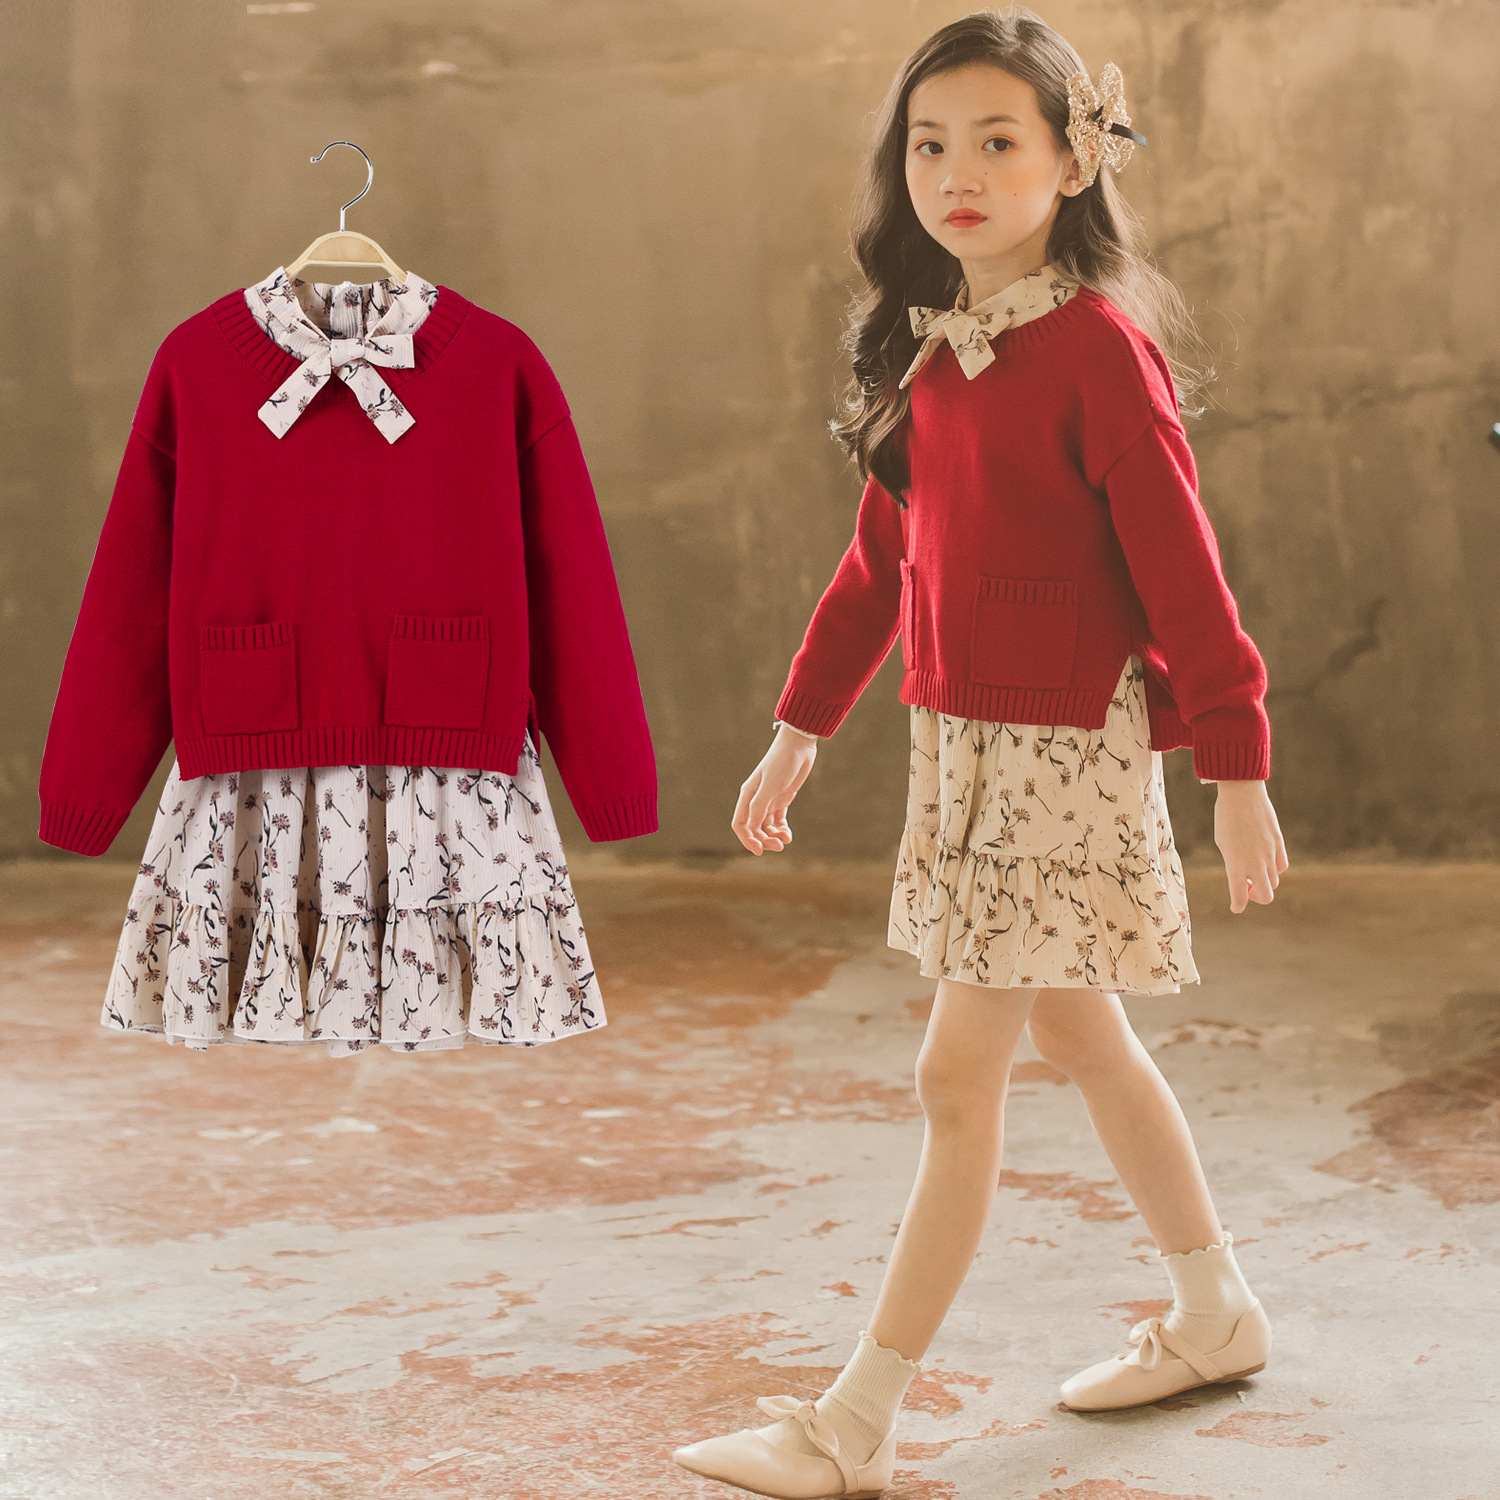 Little Girls Sweater Dress Two-pieces Floral Print Long Sleeve Chiffon Dress Autumn Winter Kids Outfit age 4 5 6 7 8 9 10 years letter print long sleeve sweatshirt dress page 5